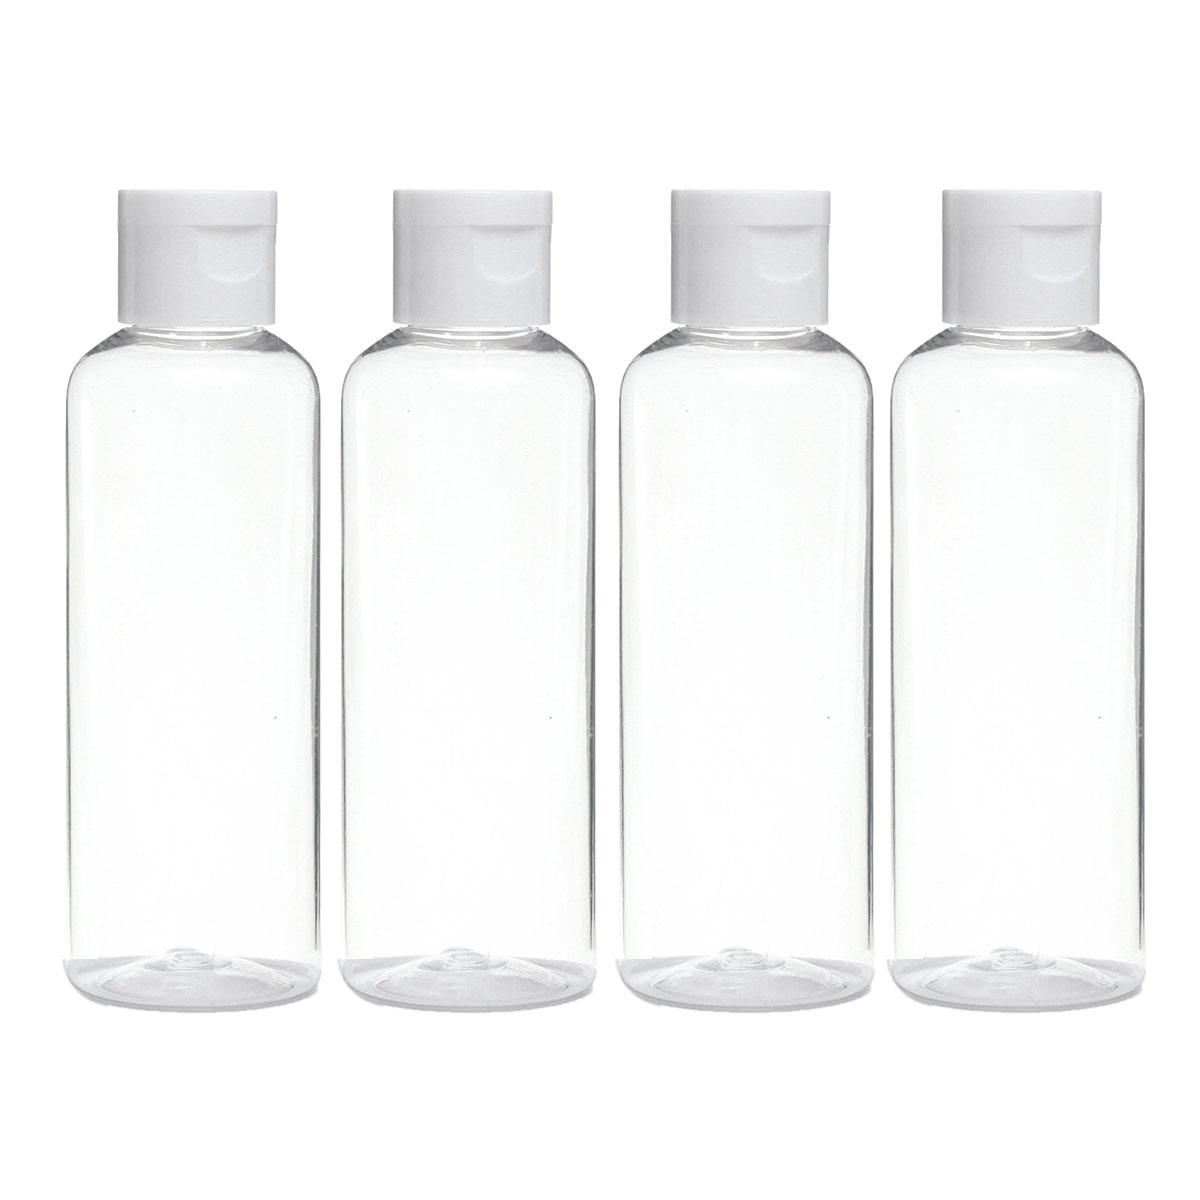 4PCS Empty Clear 100ml PET Cream Container Portable Cosmetic Travel Shower Lotion Bottles Personalized Sample Lotion Bottle 1kg pack thyssen 738 tig welding wires